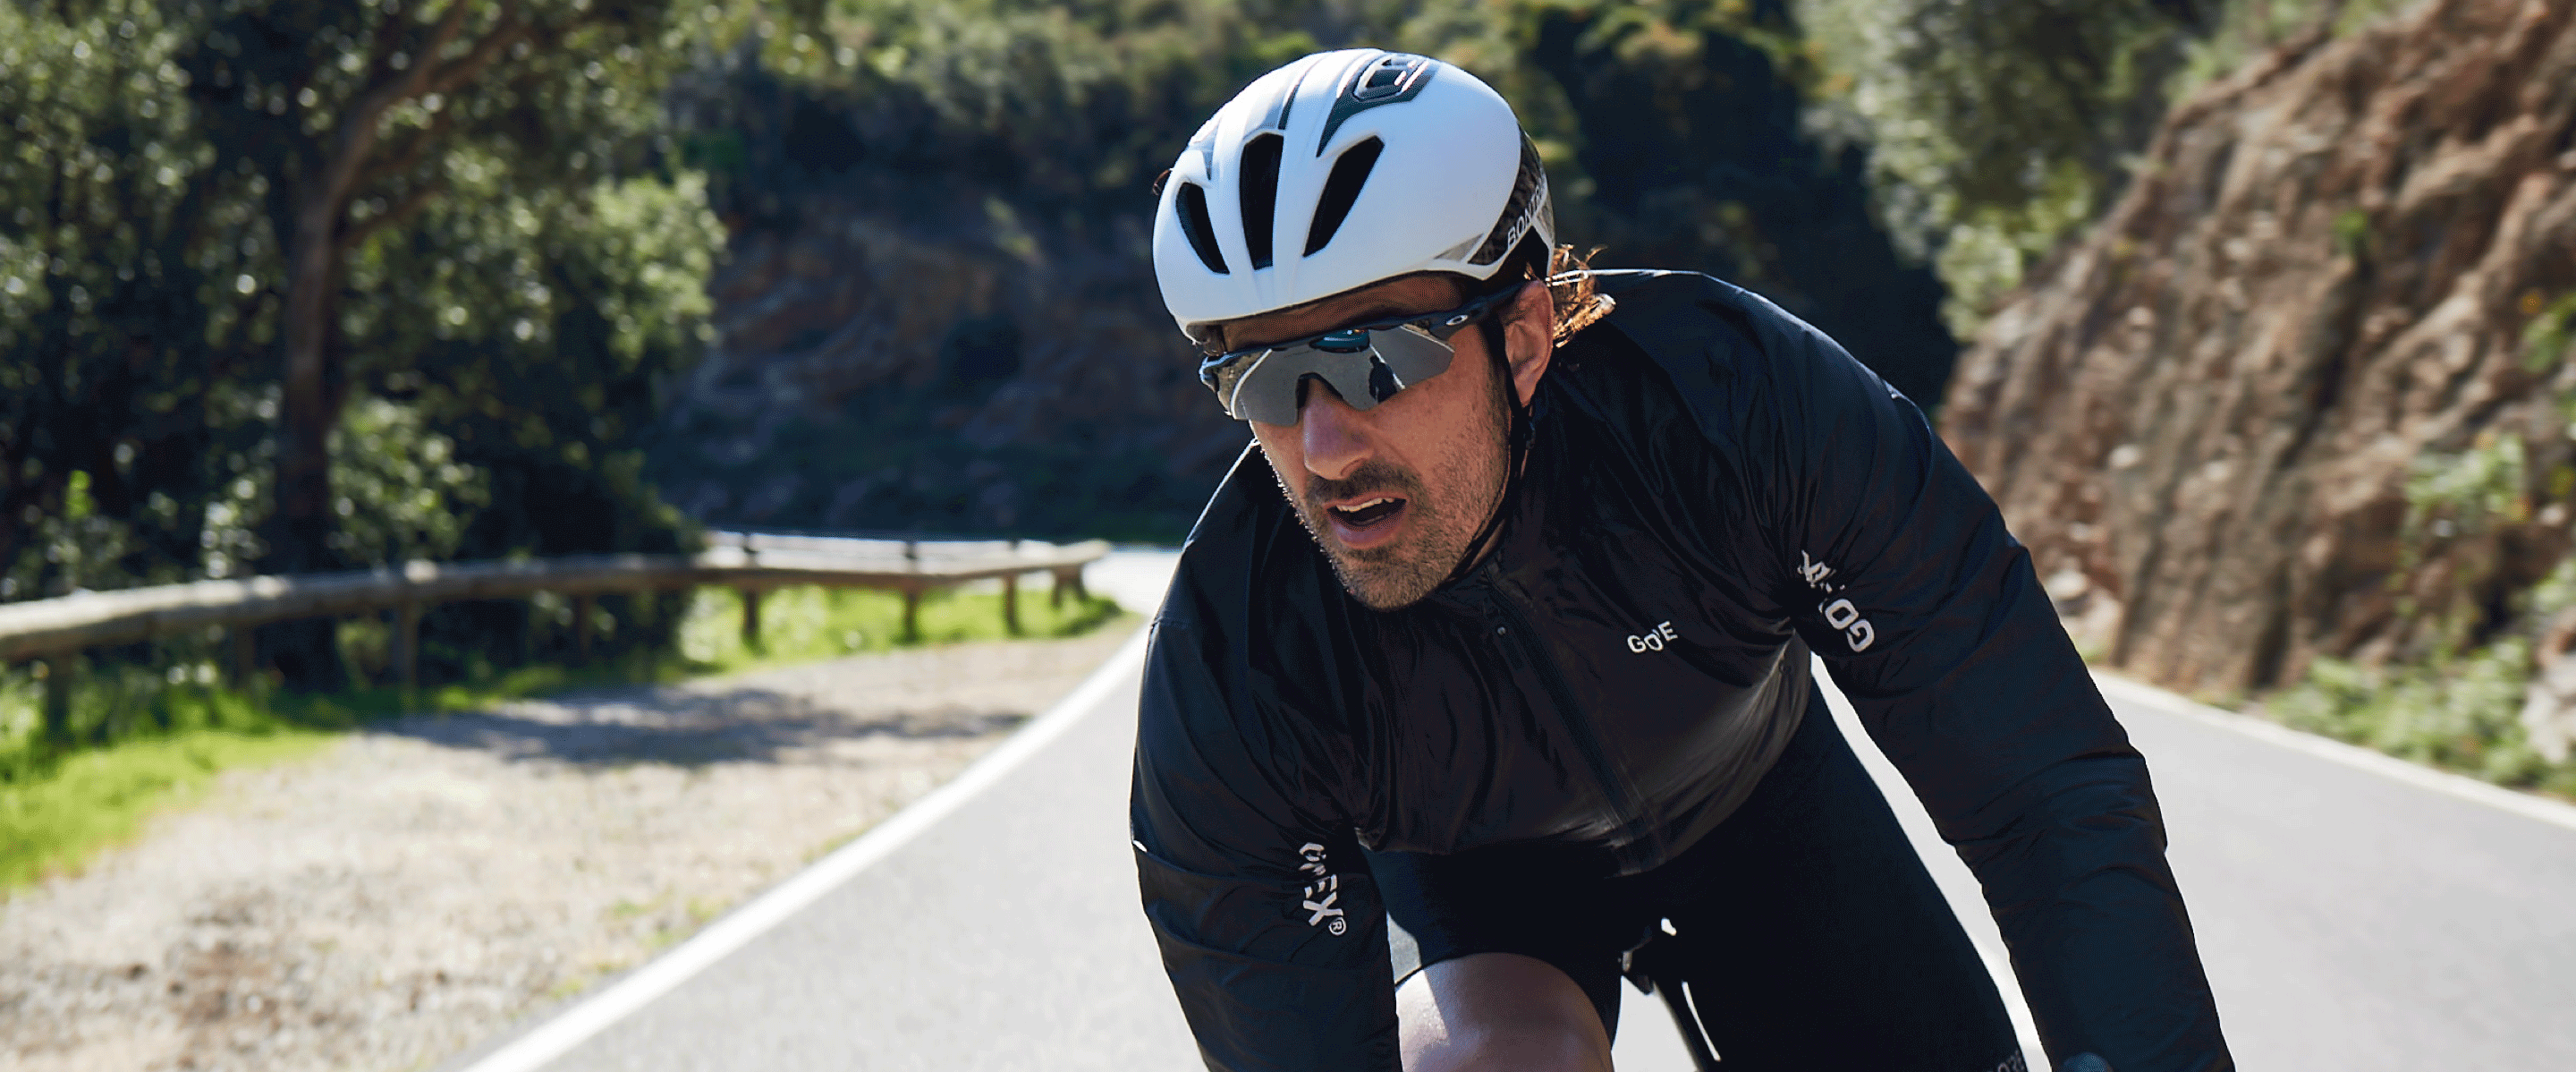 Shop Fabian Cancellara